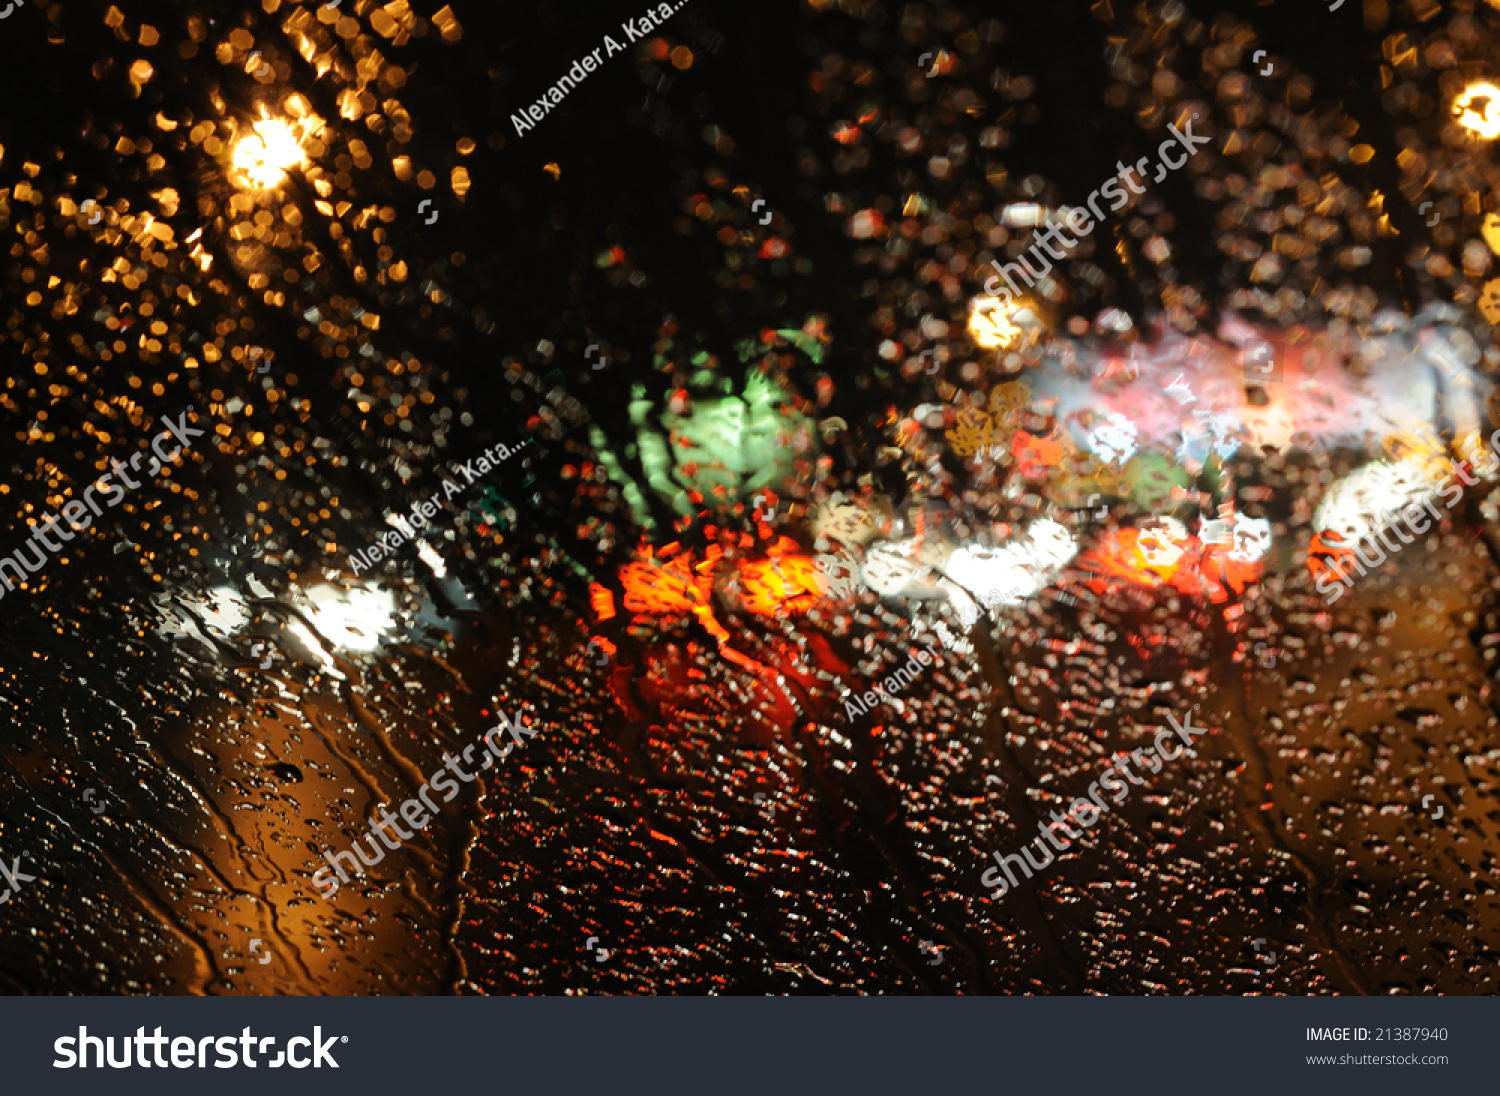 inside the car night rain and town lights background stock photo 21387940 shutterstock. Black Bedroom Furniture Sets. Home Design Ideas